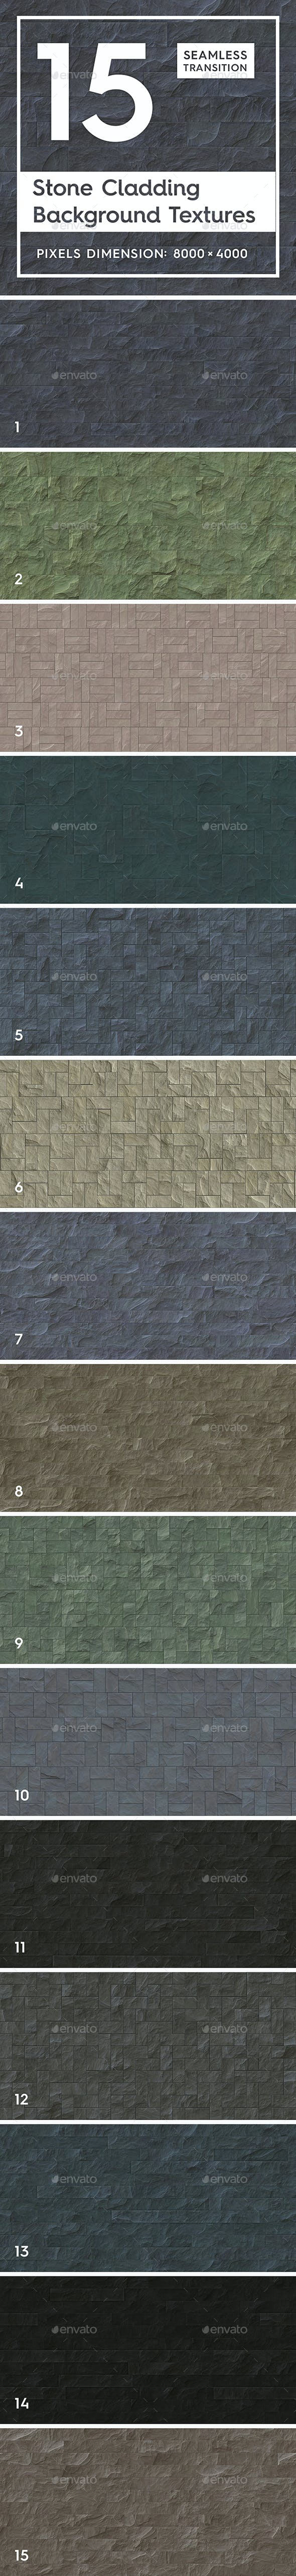 15 Seamless Stone Cladding Textures - 3DOcean Item for Sale